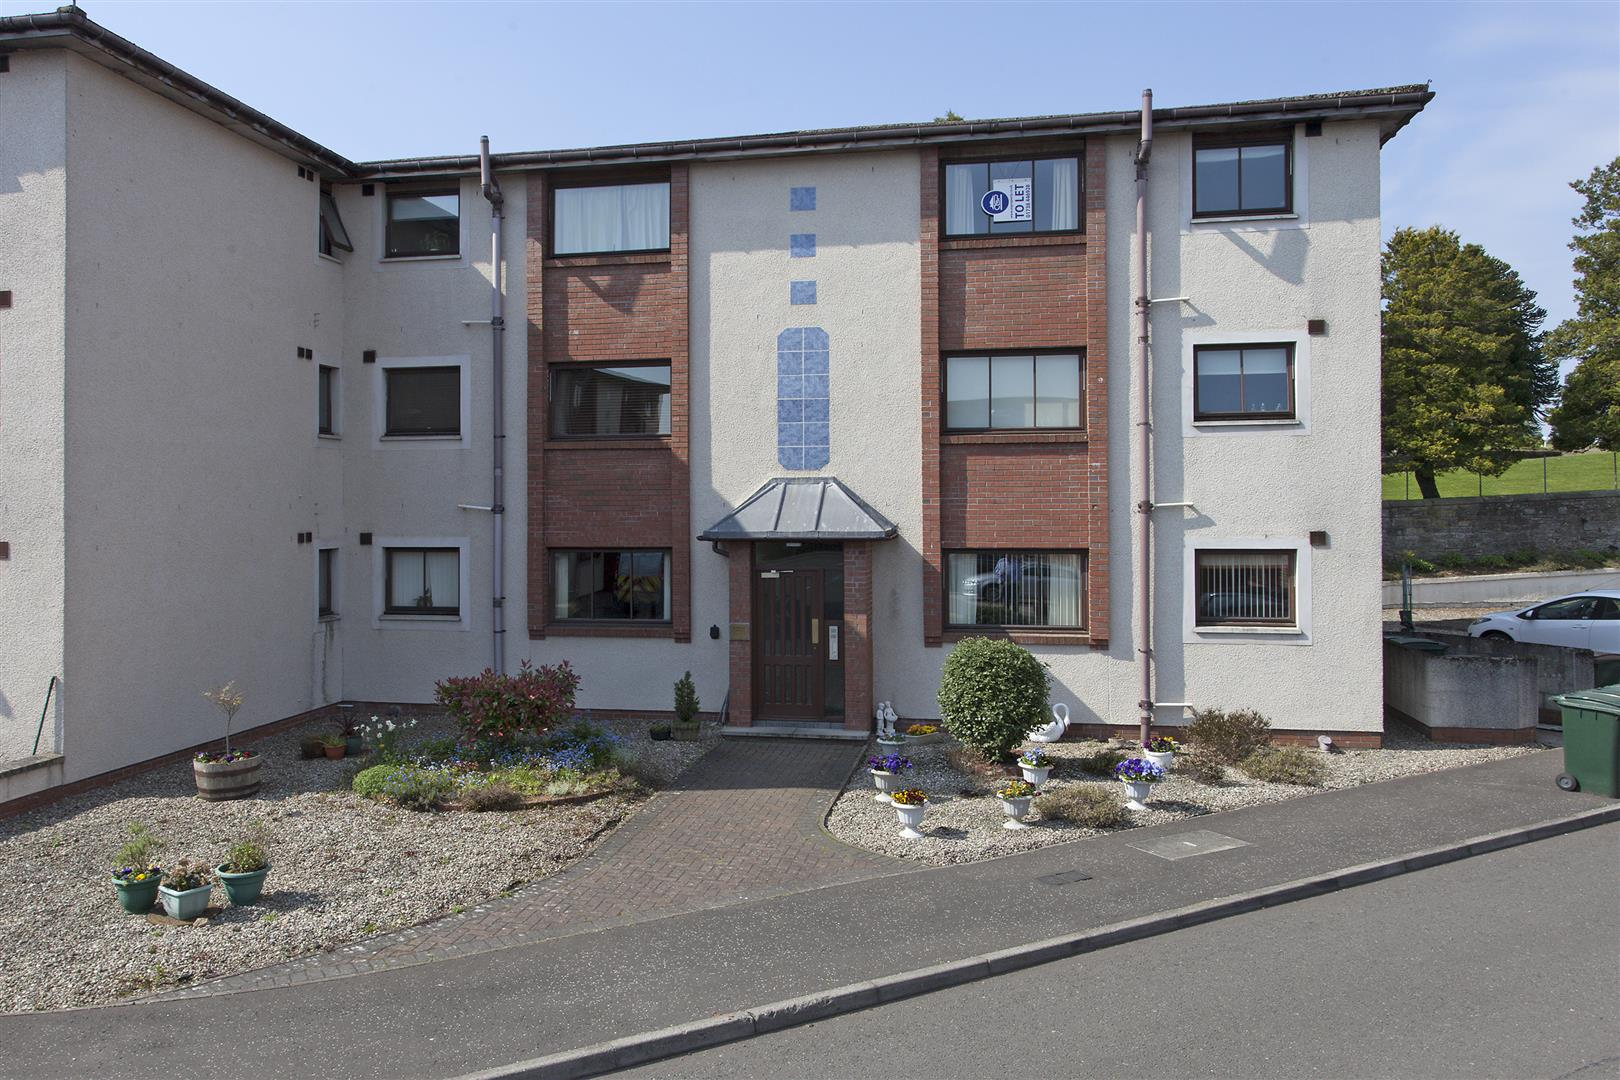 Rubislaw Court, 47, The Stables, Feus Road, Perth, Perthshire, PH1 2TW, UK